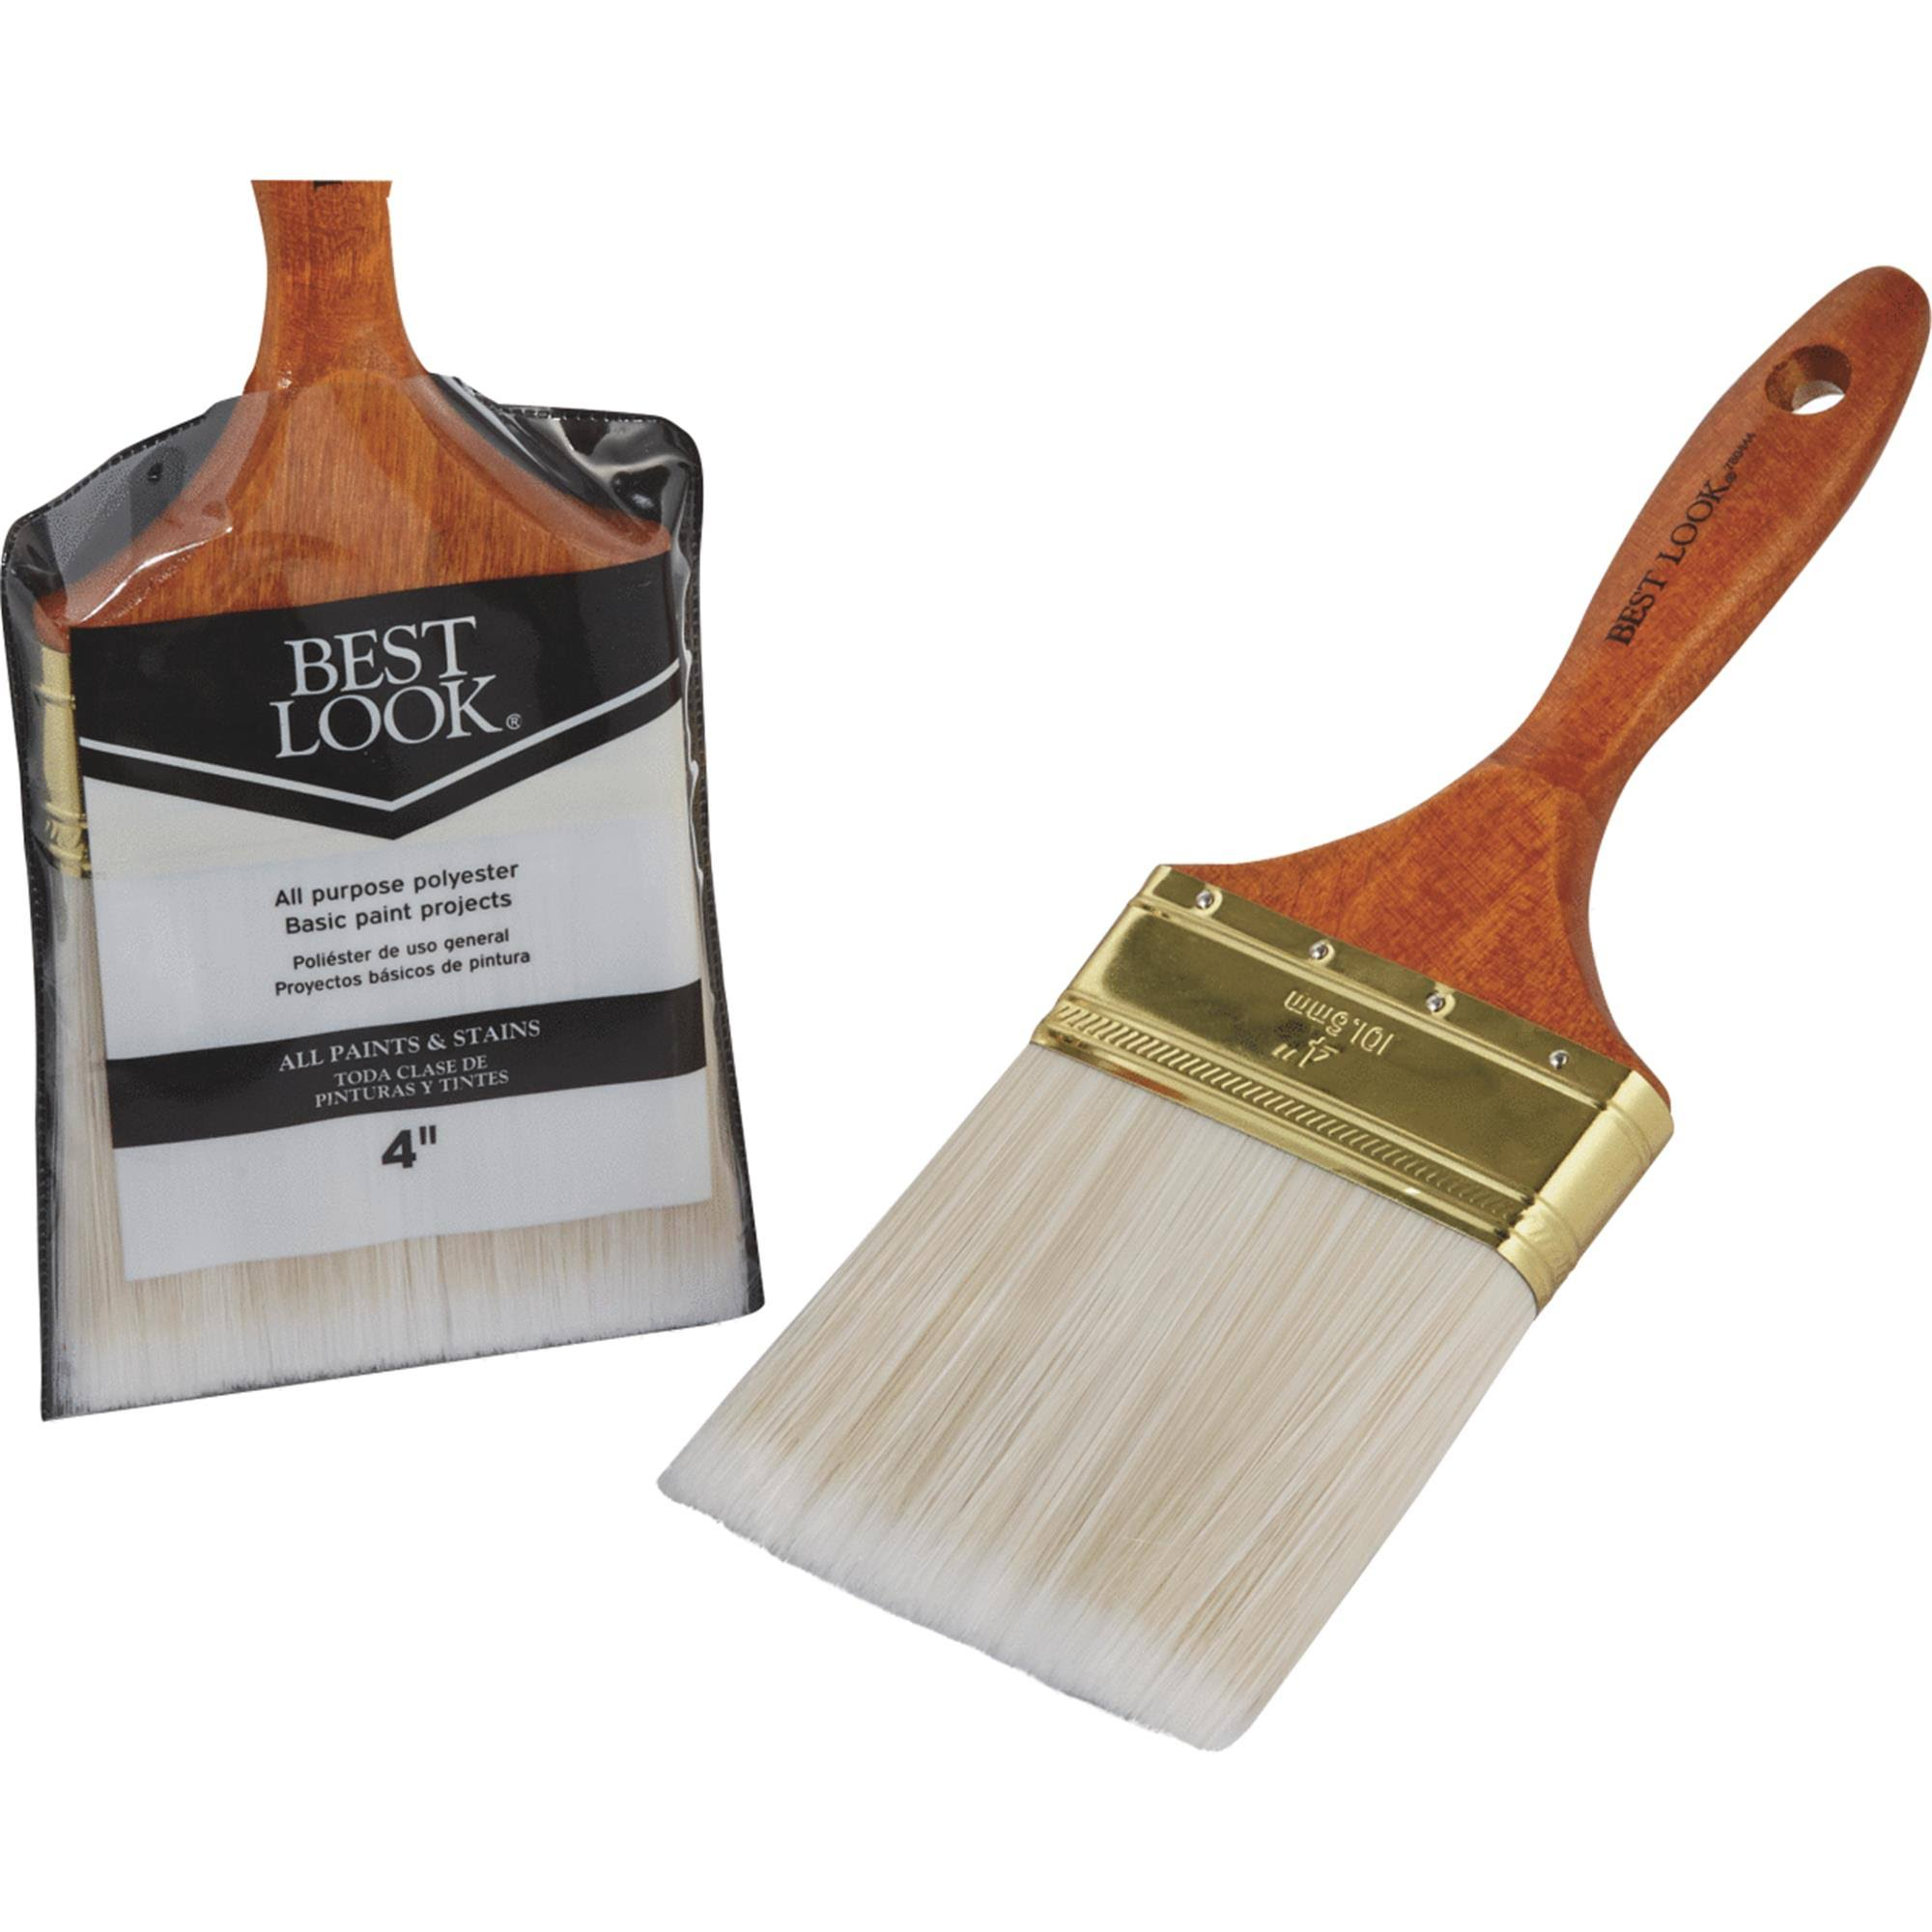 Best Look General Purpose Polyester Paint Brush - 780444